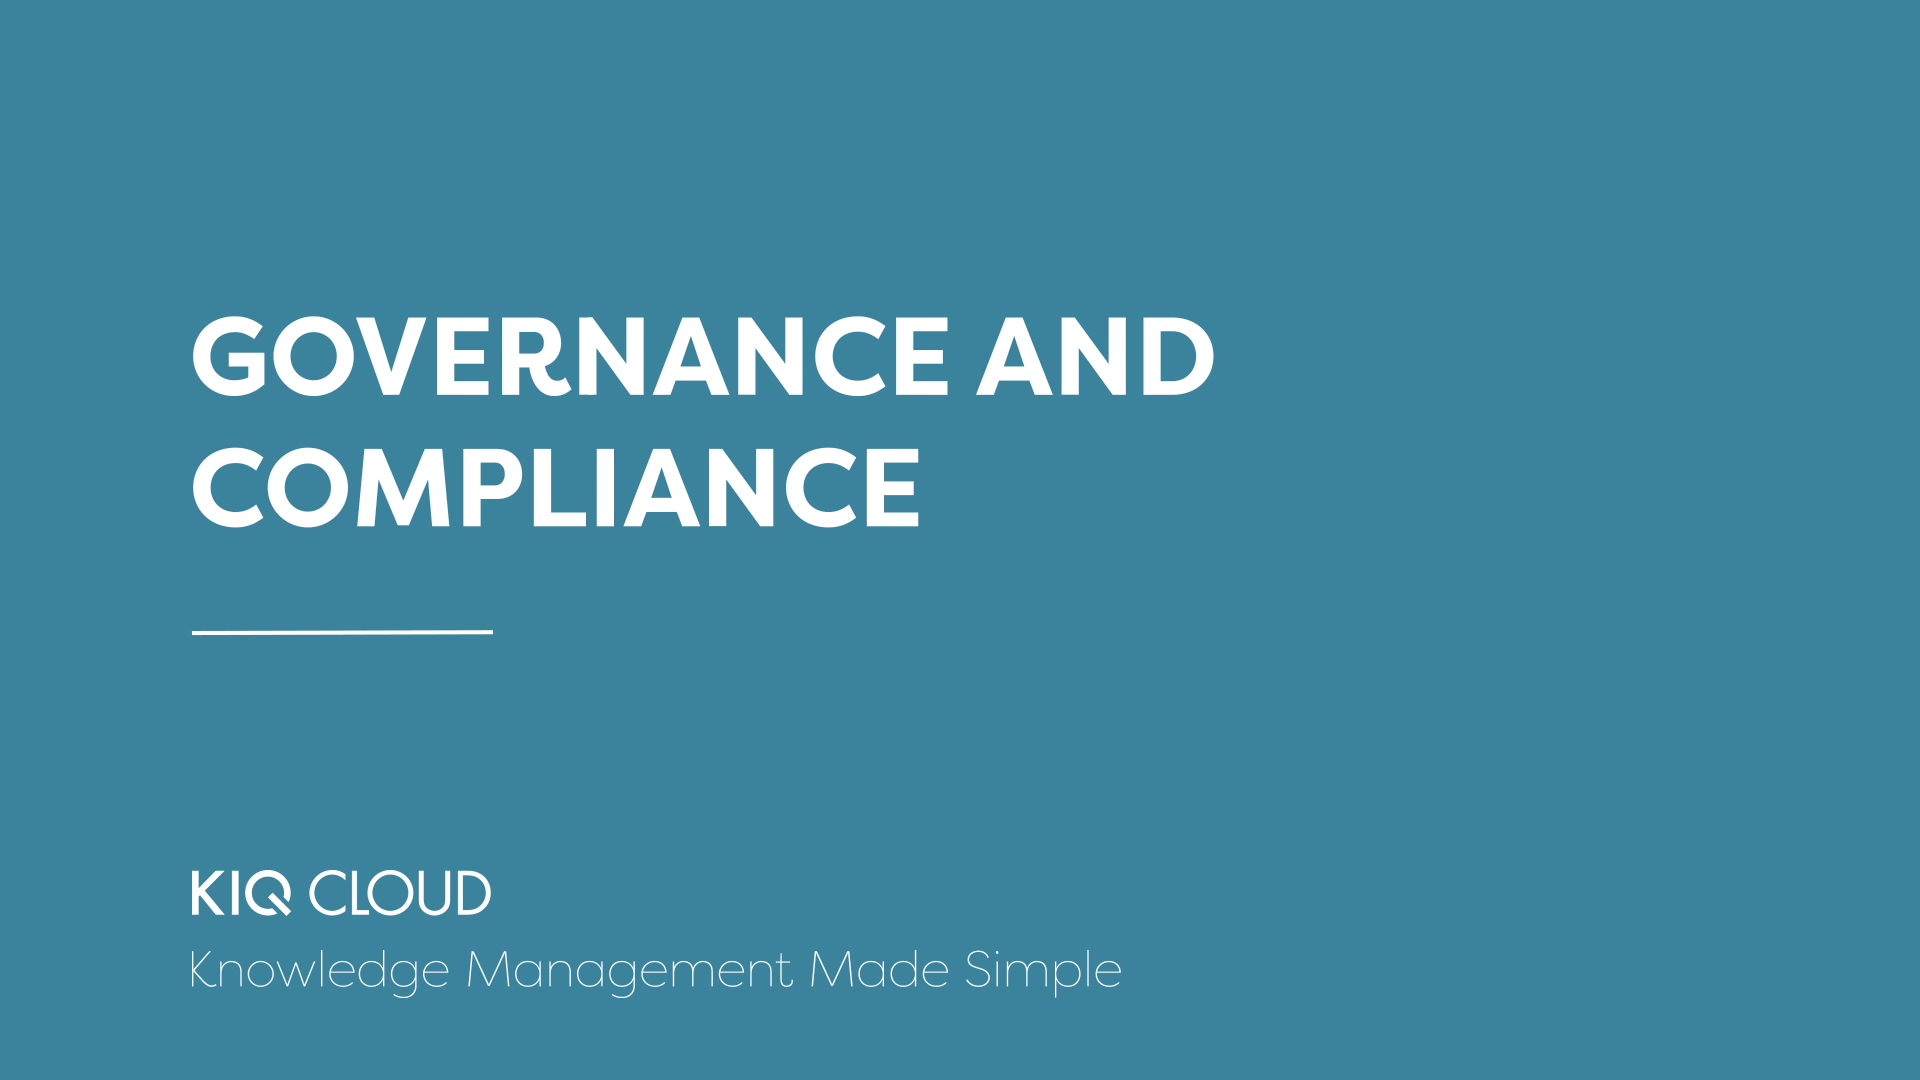 3. Governance and Compliance